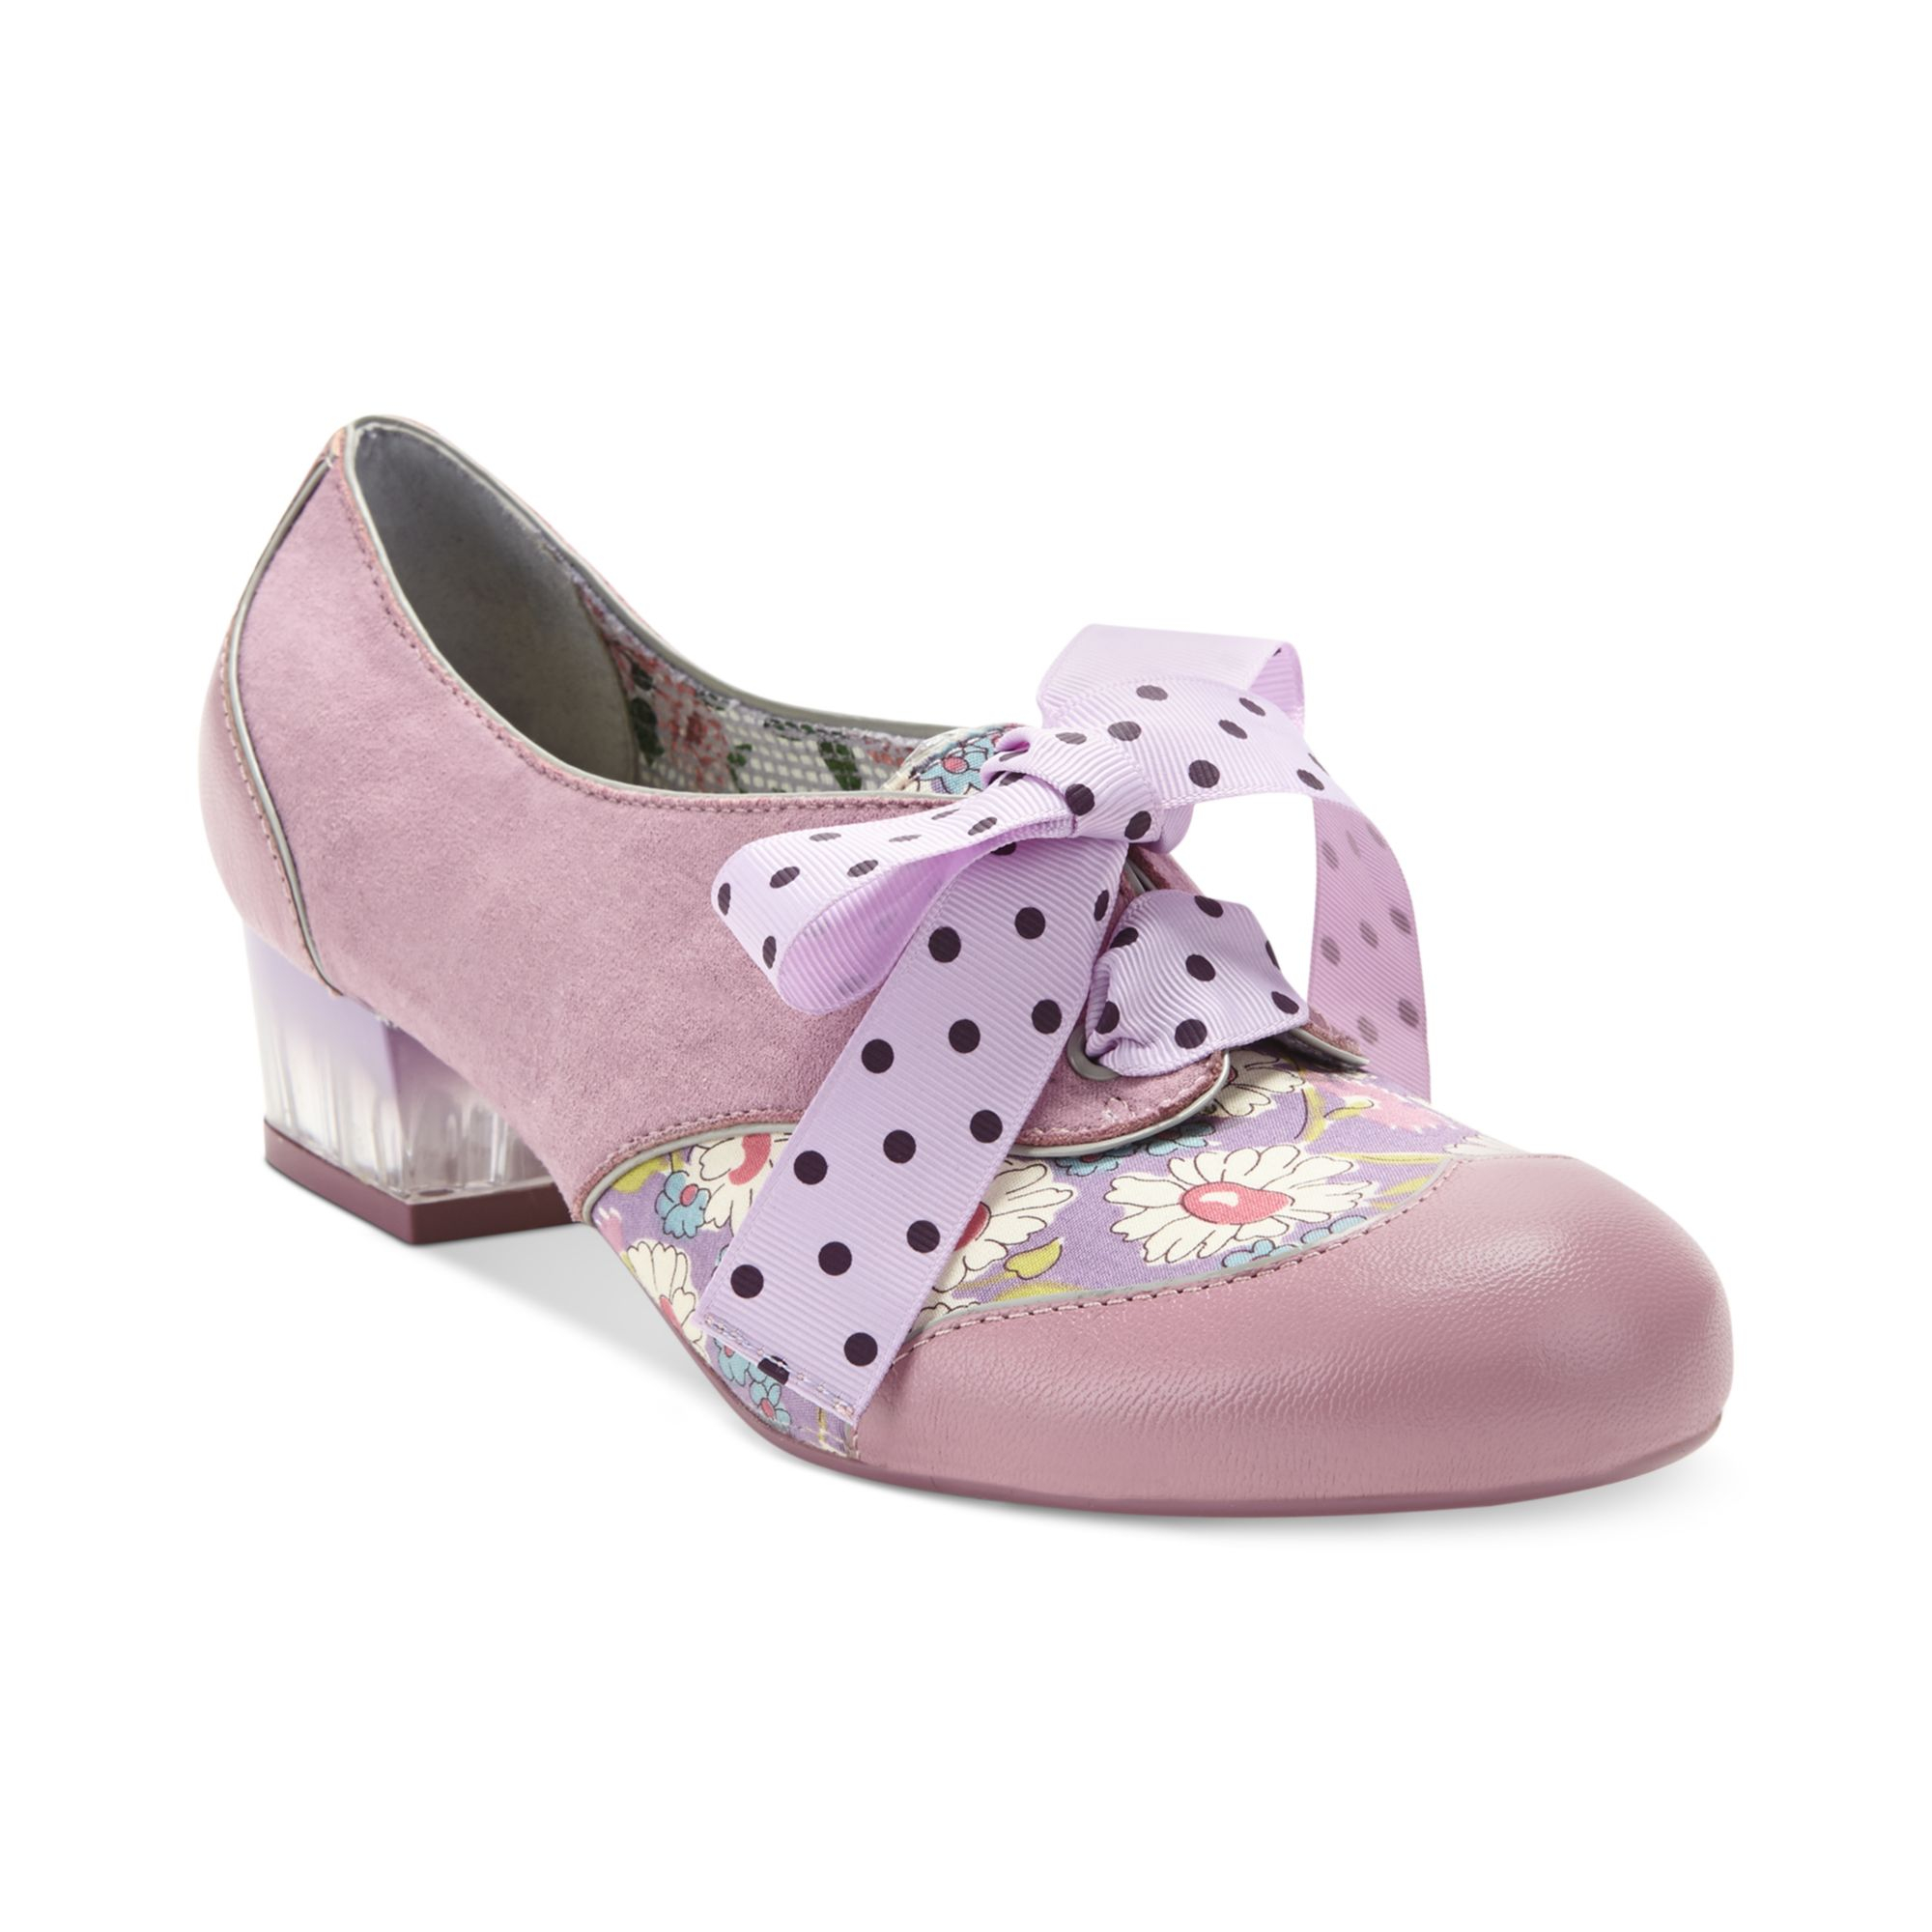 Poetic Licence Mark My Words Oxford Pumps In Pink (Old Pink) | Lyst